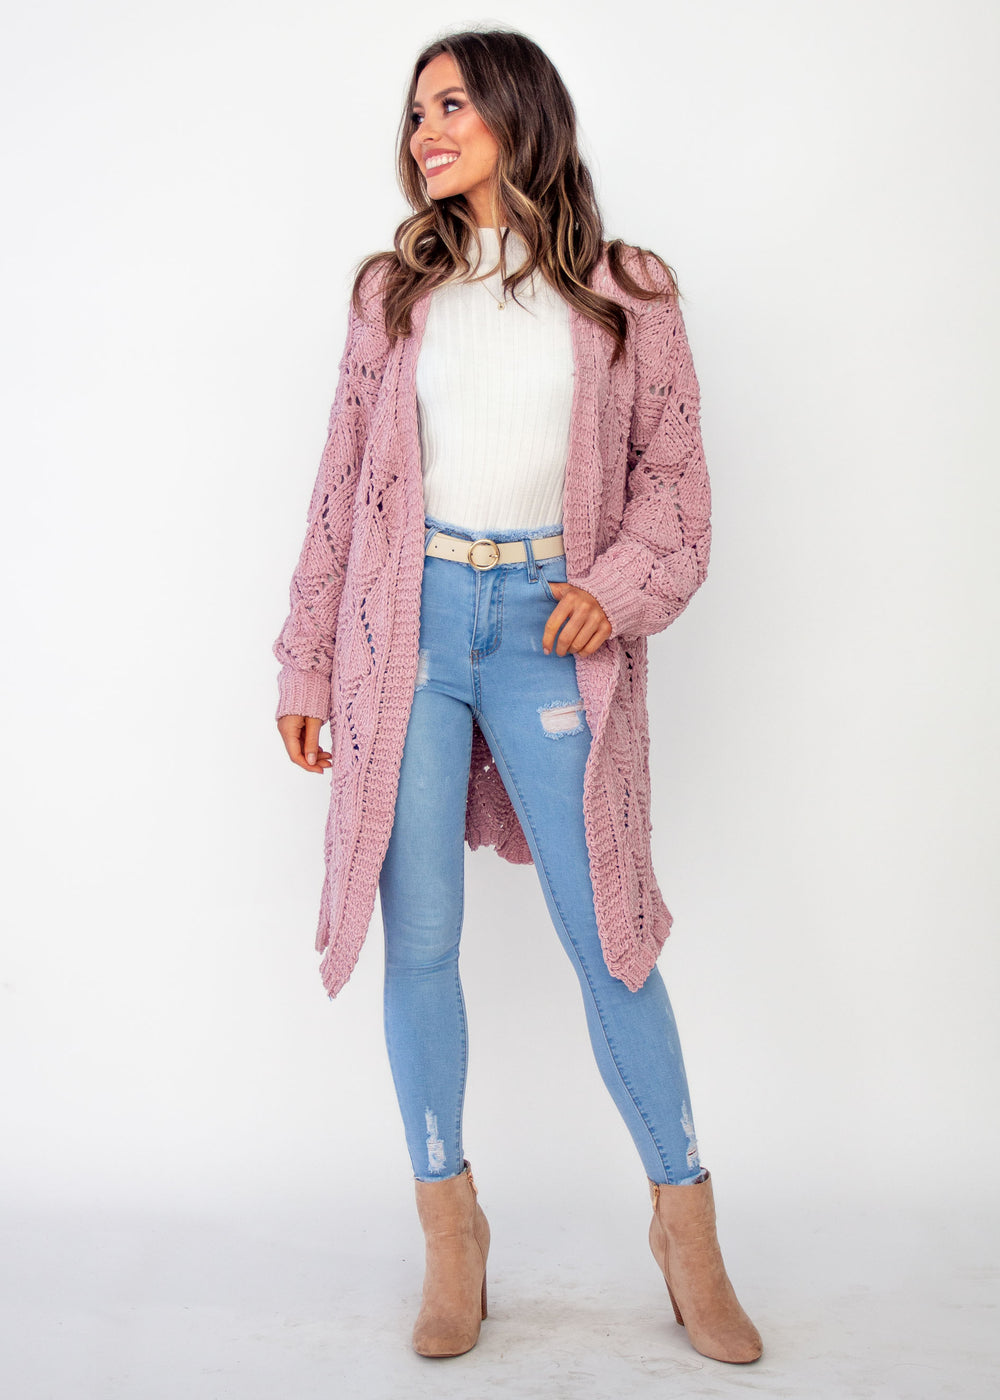 Women's Malibu Sunset Cardigan - Blush